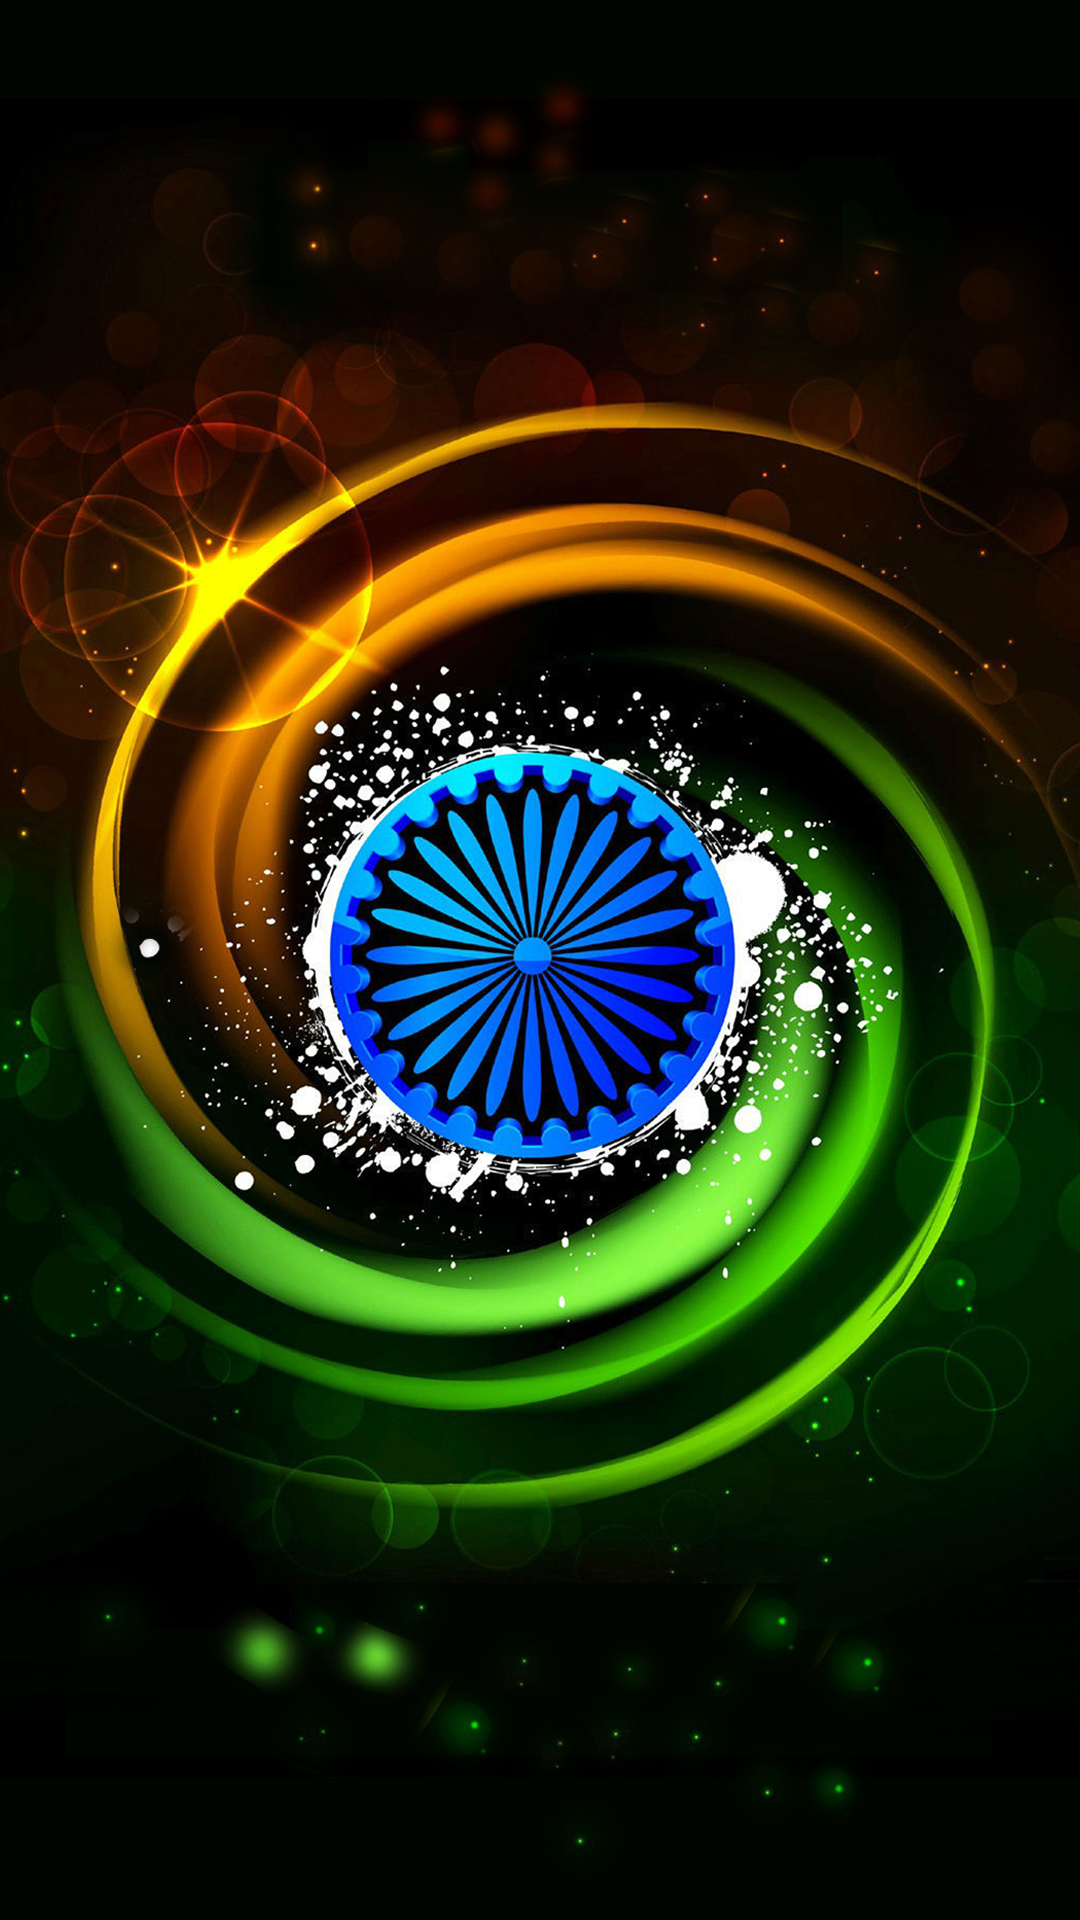 India flag for mobile phone wallpaper 08 of 17 tiranga - Indian flag hd wallpaper for android ...